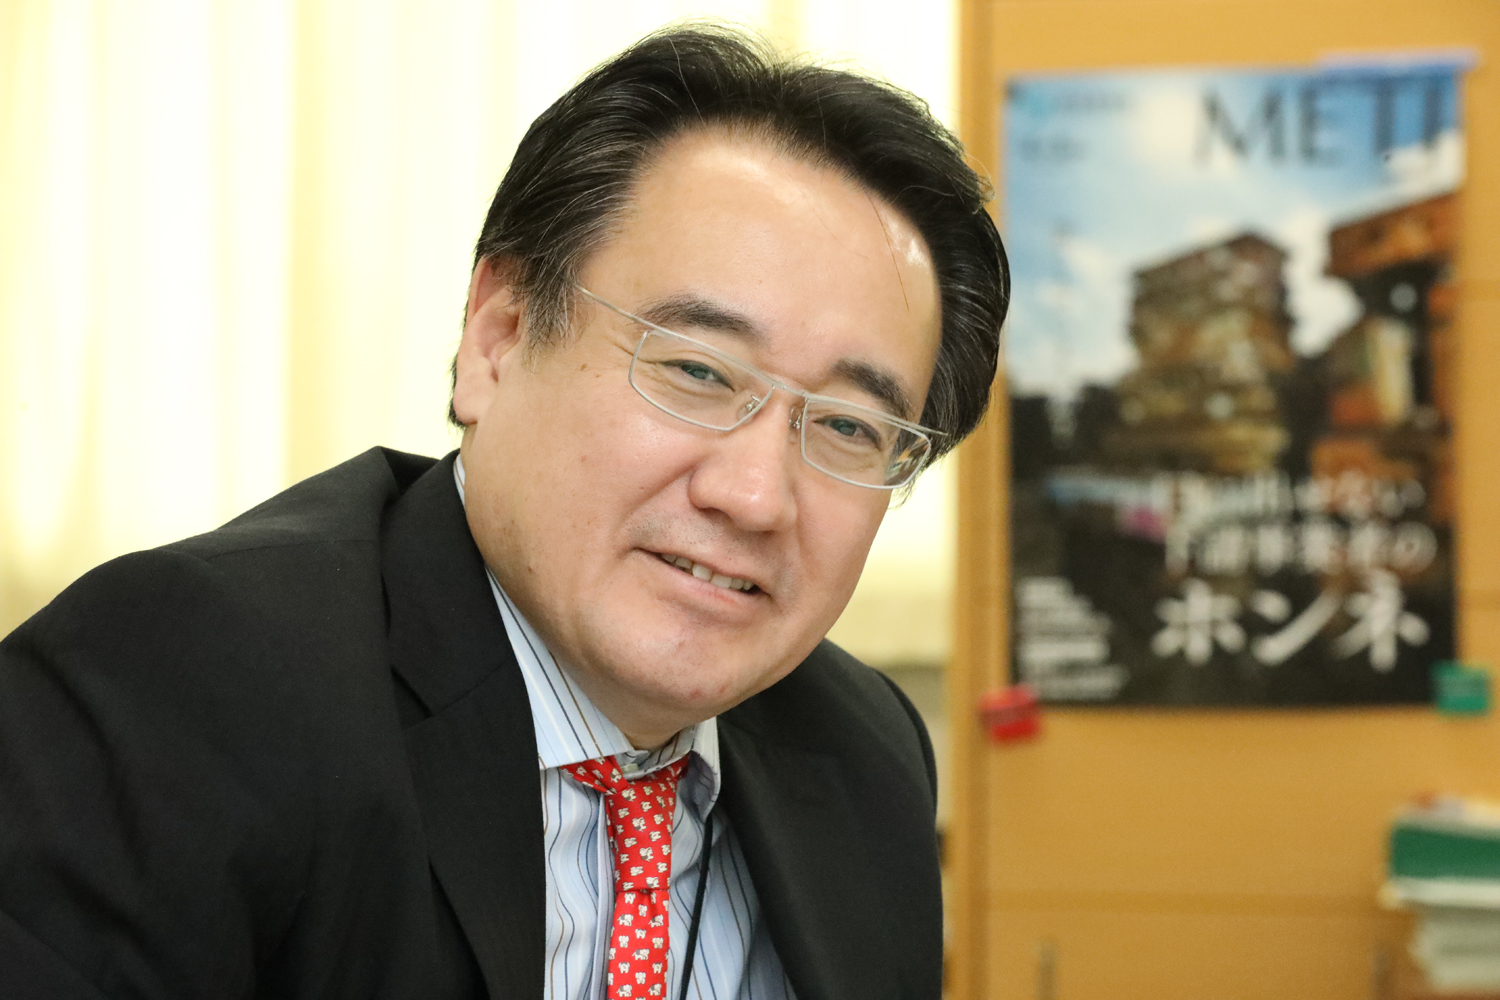 Deputy Commissioner of The Small and Medium Enterprise Agency Yasuhiro Maeda talks about his expectations on digital transformation efforts at the Ministry of Economy, Trade and Industry.